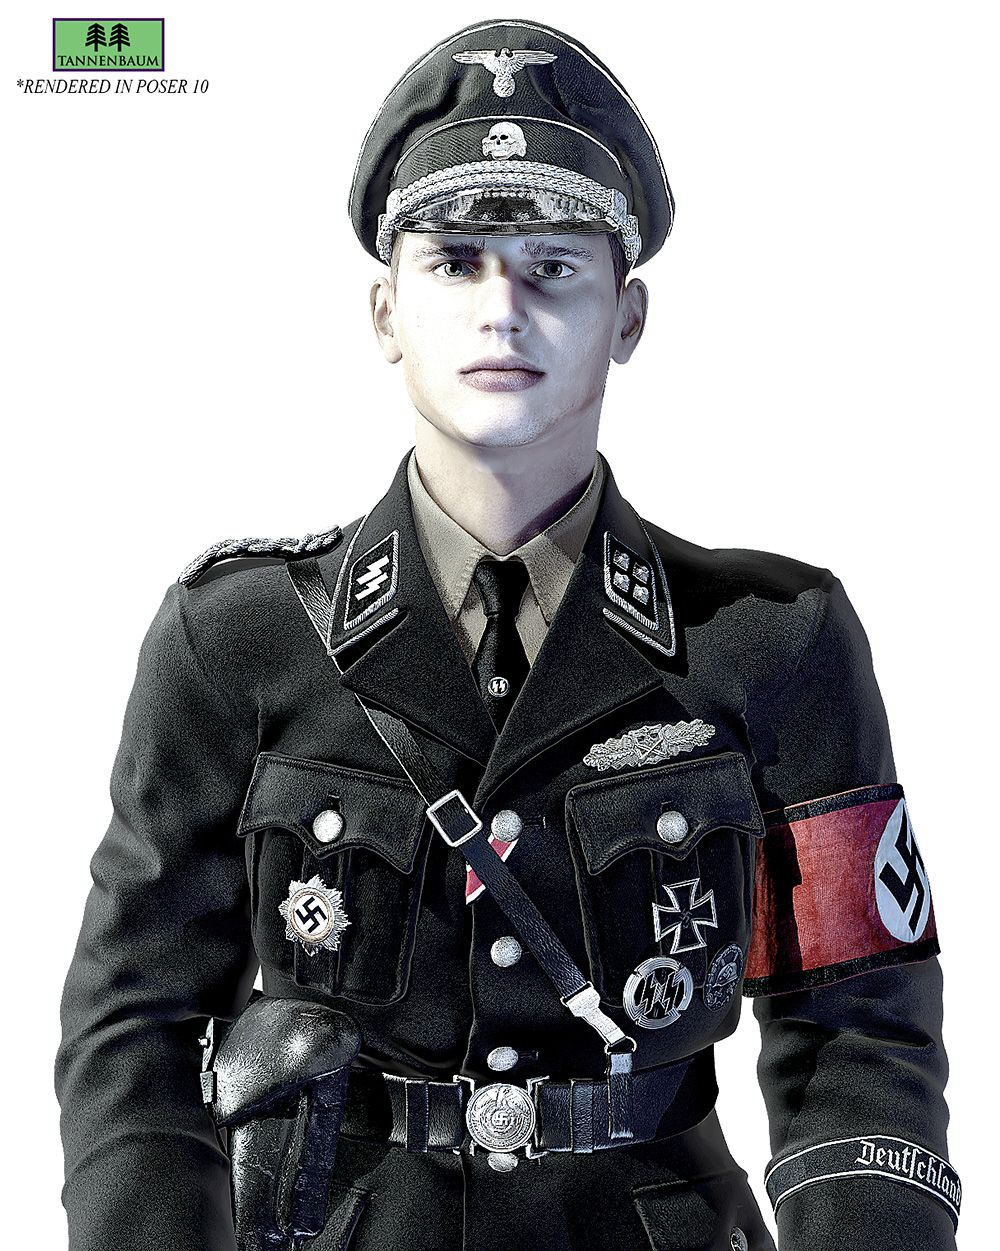 dieter in the hitler youth upper division character dieter in the hitler youth upper division